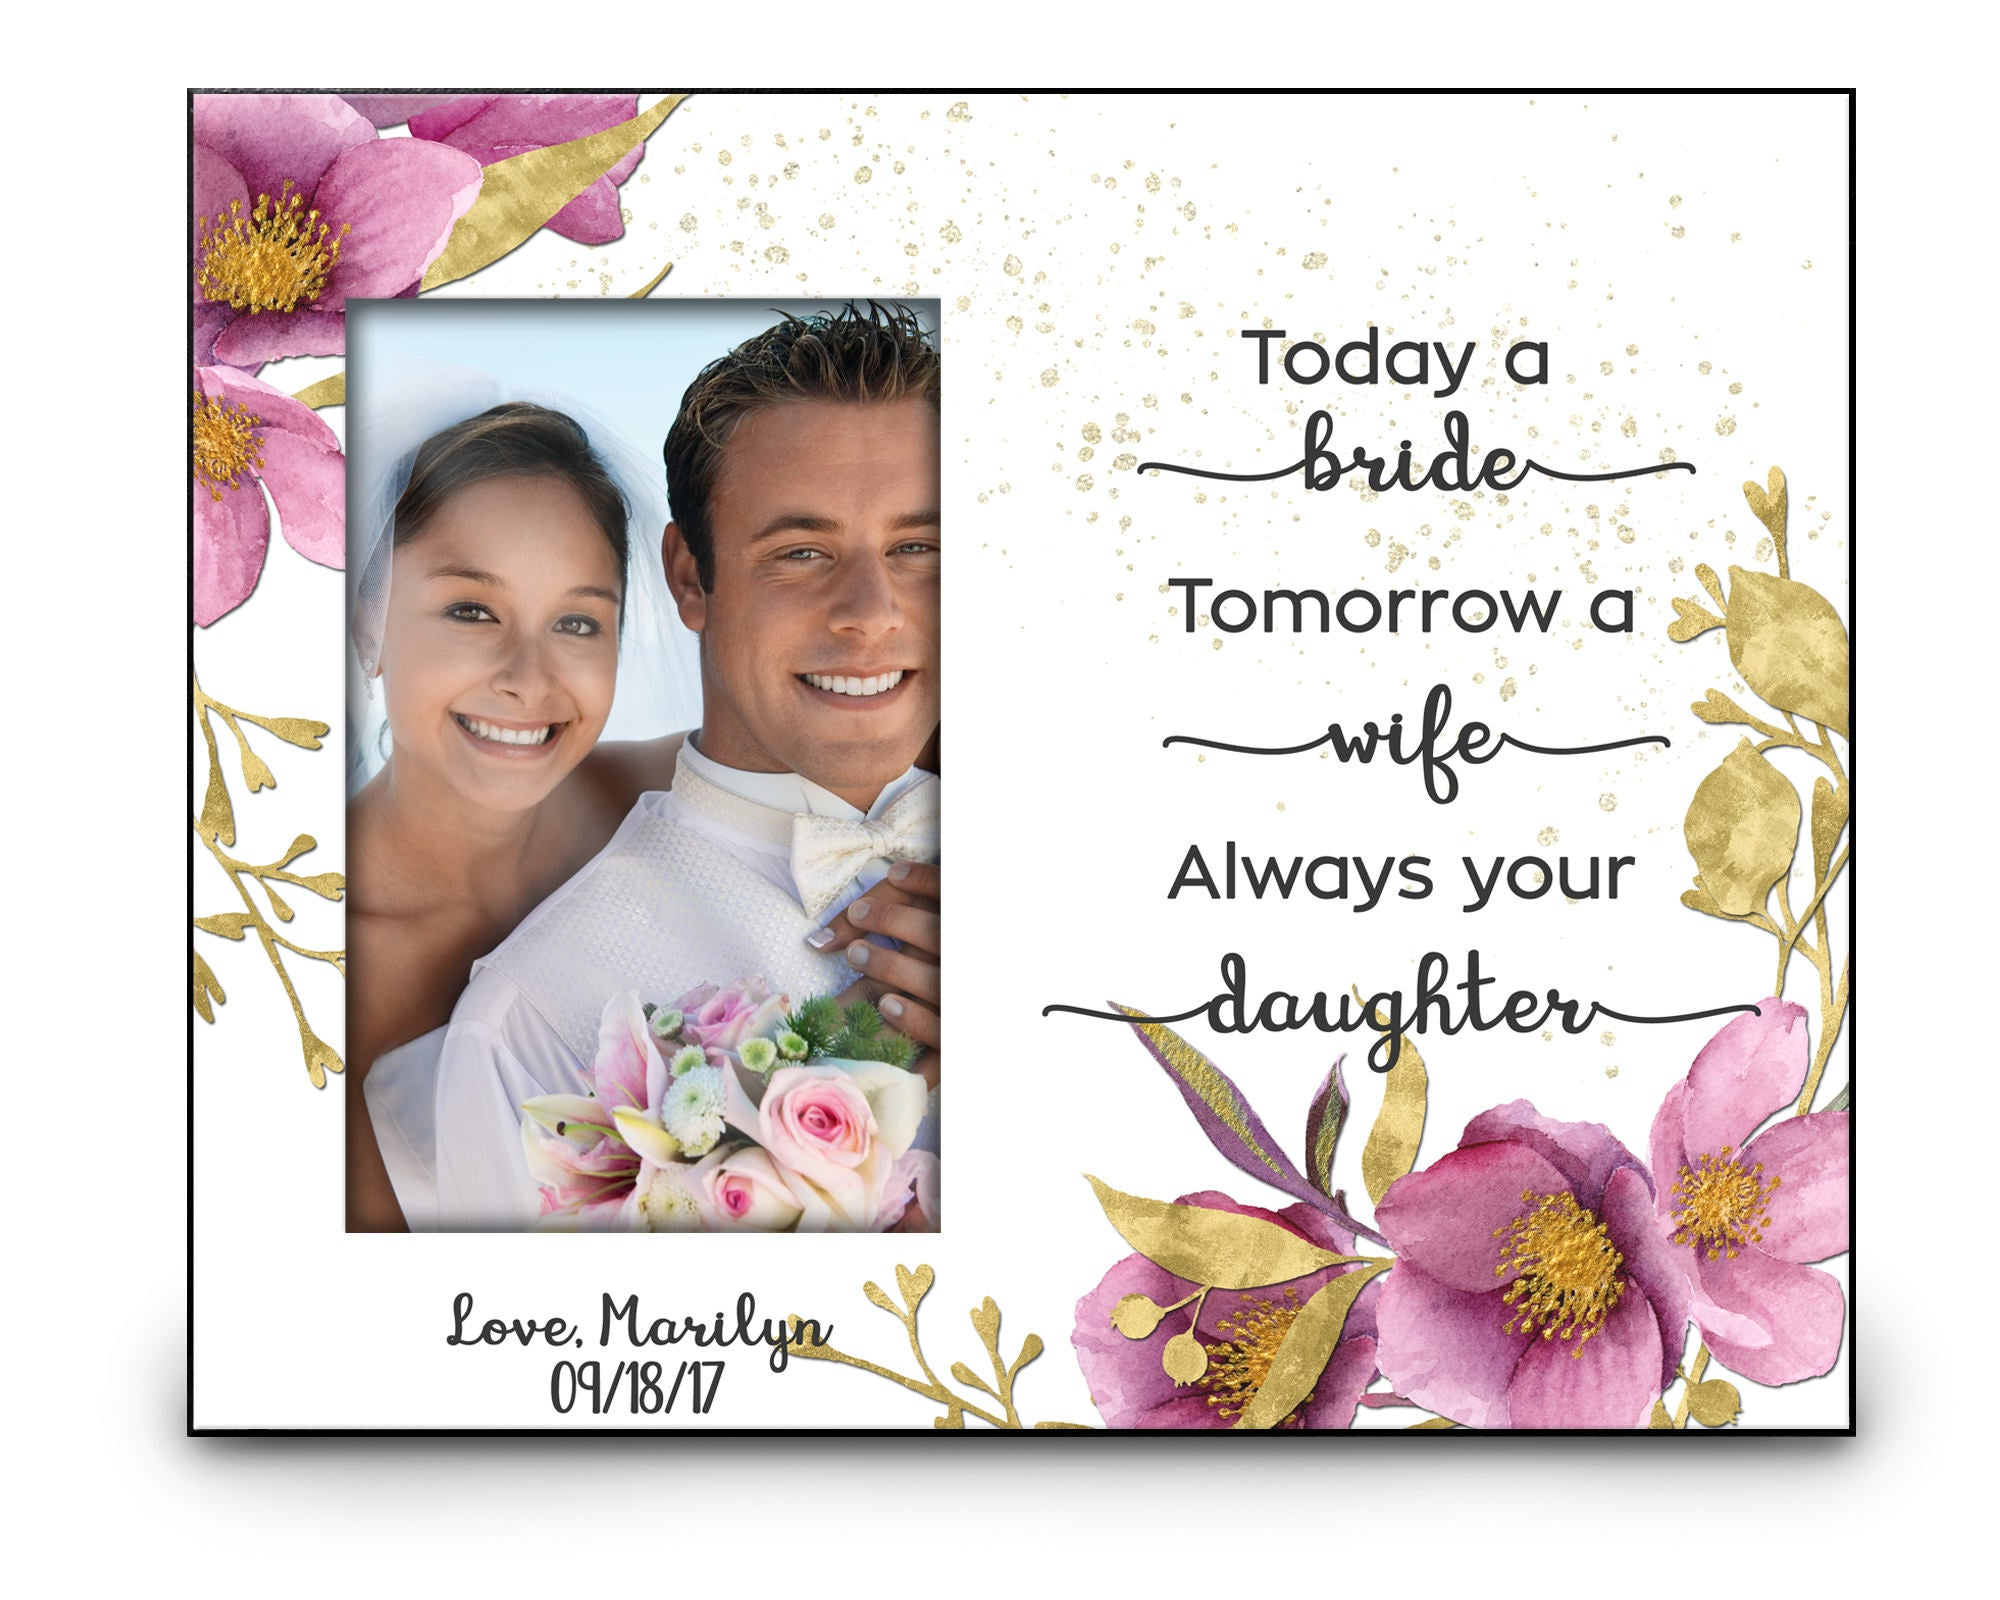 Personalized Thank You Wedding Gift from Daughter Today a Bride - Always your Daughter Photo Frame Coffee Mug Gift Set